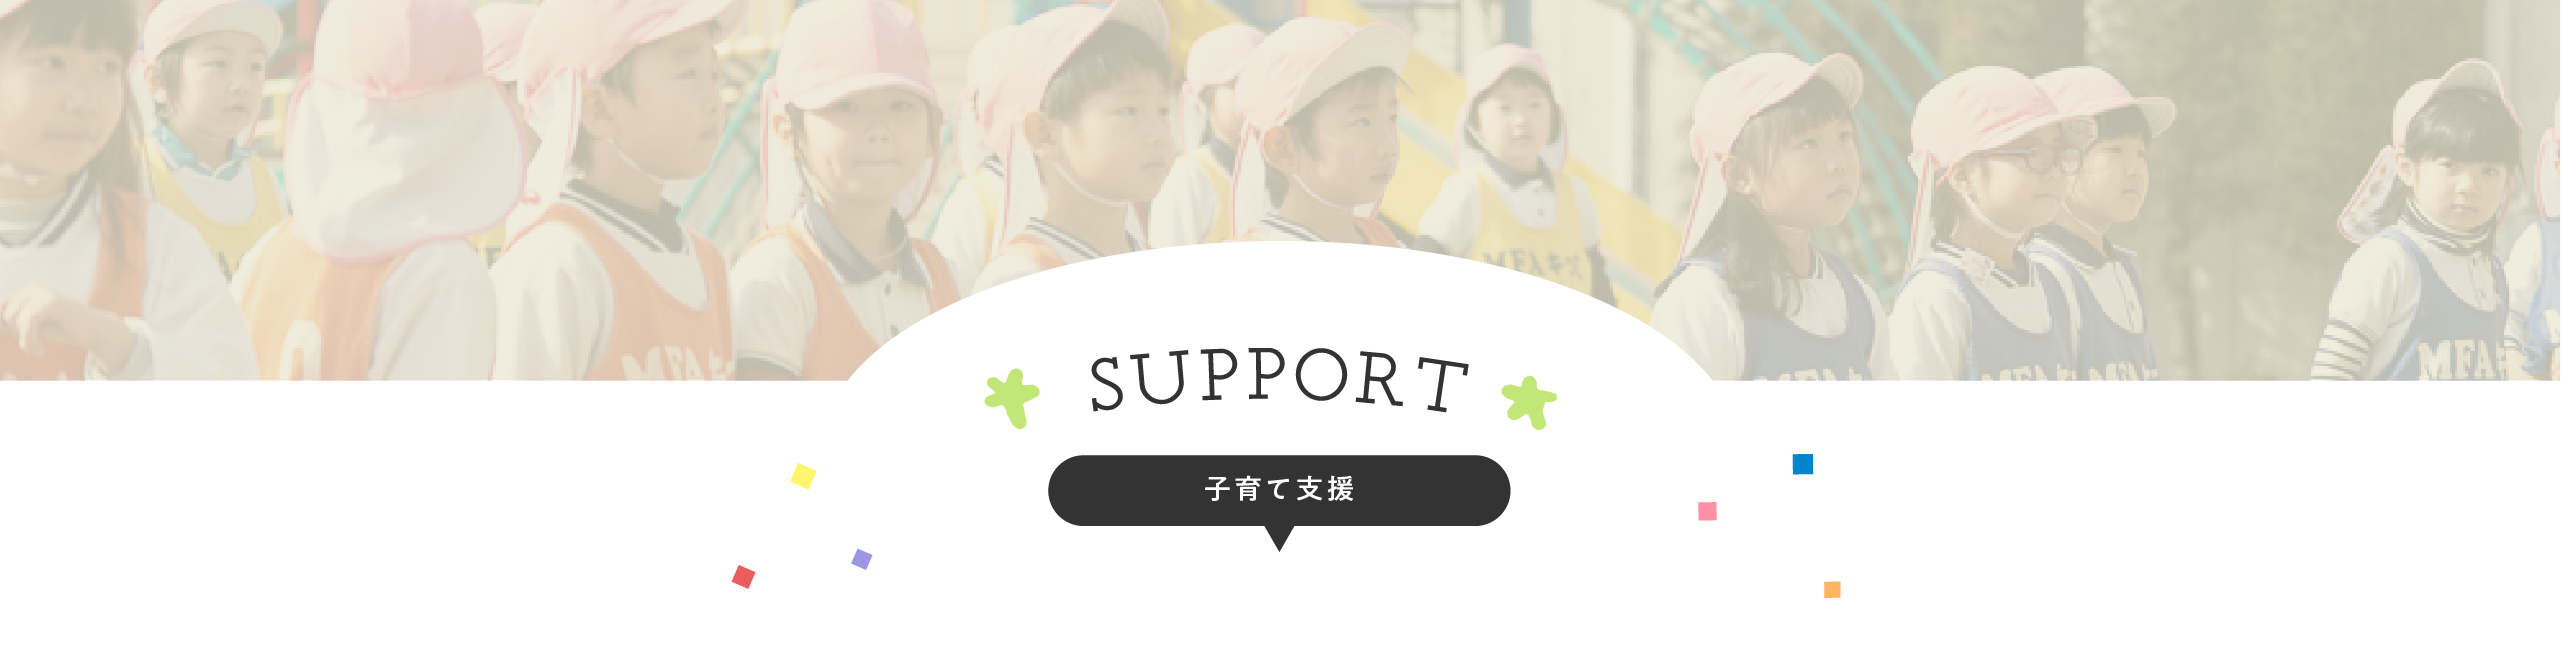 SUPPORT -子育て支援-